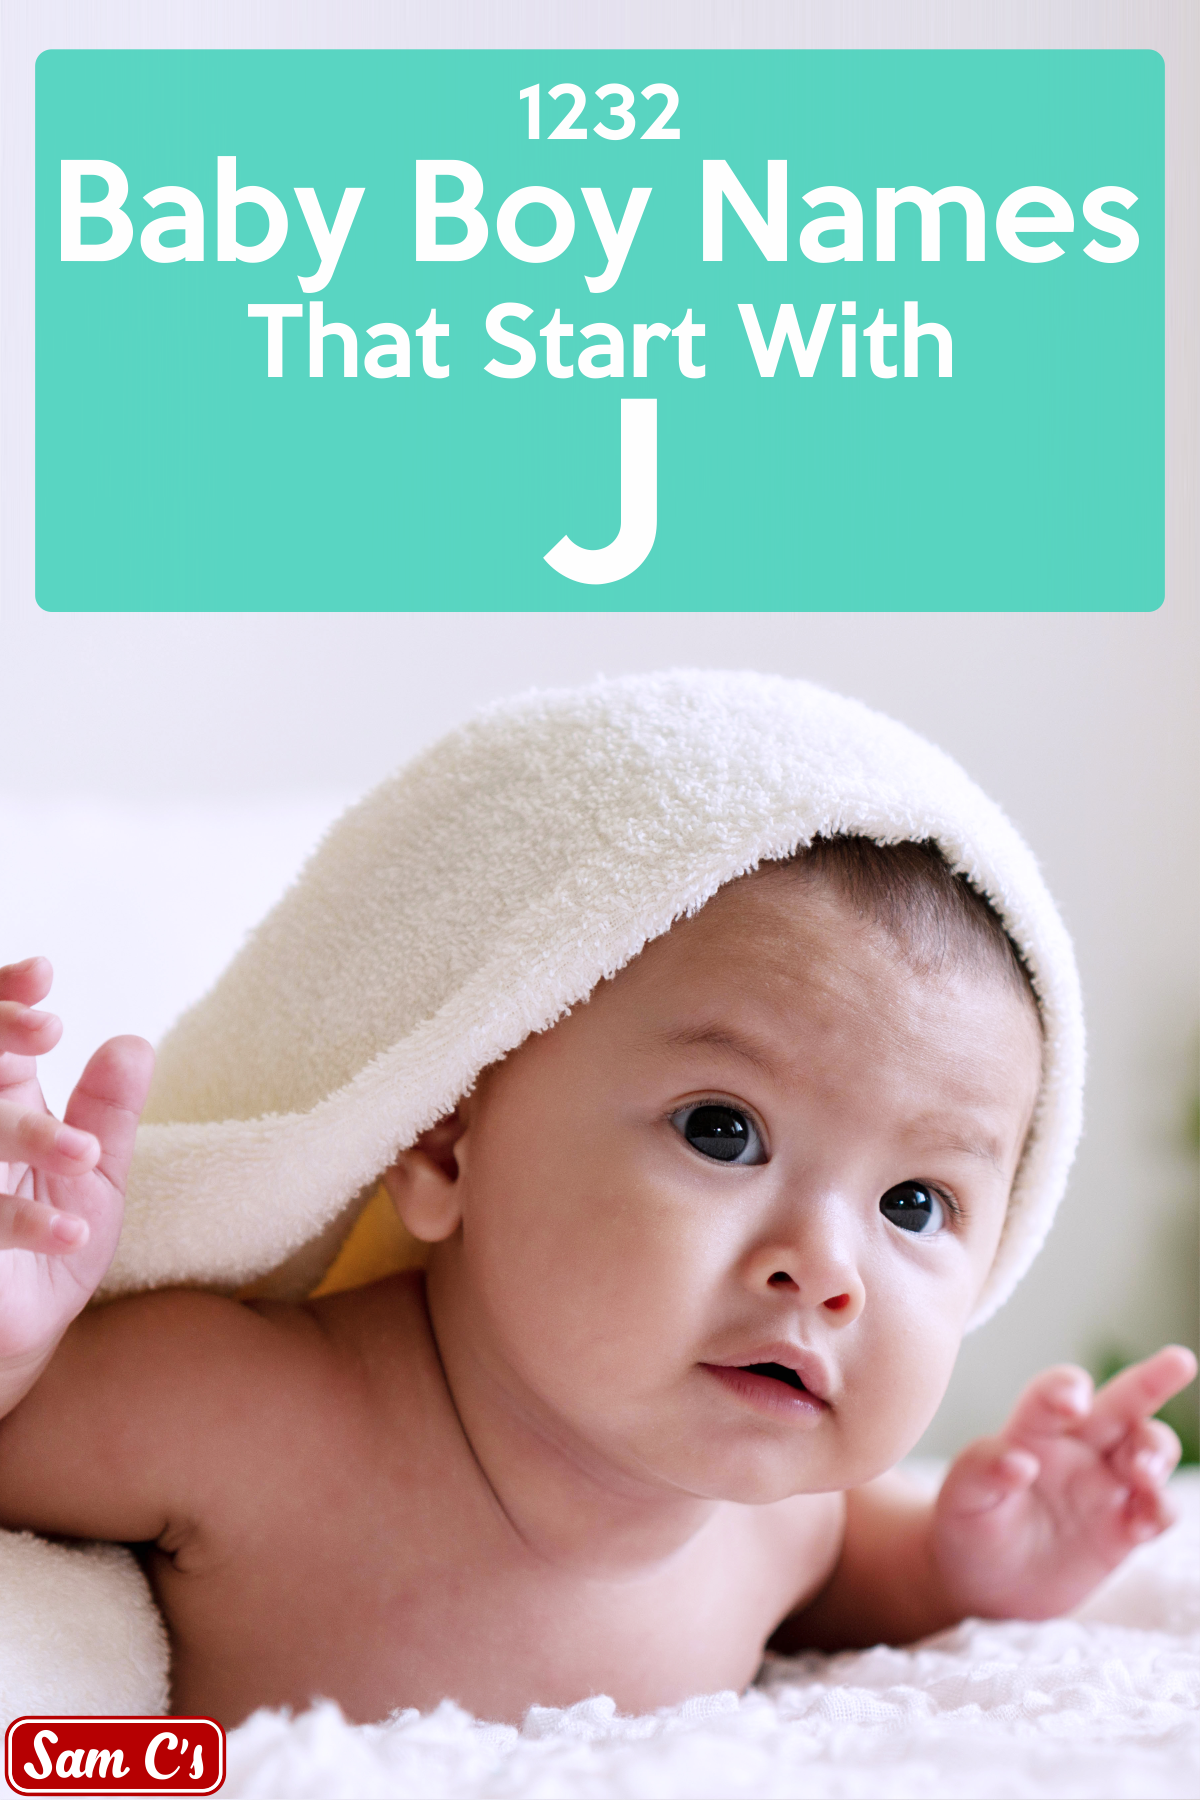 Baby Boy Names That Start With J